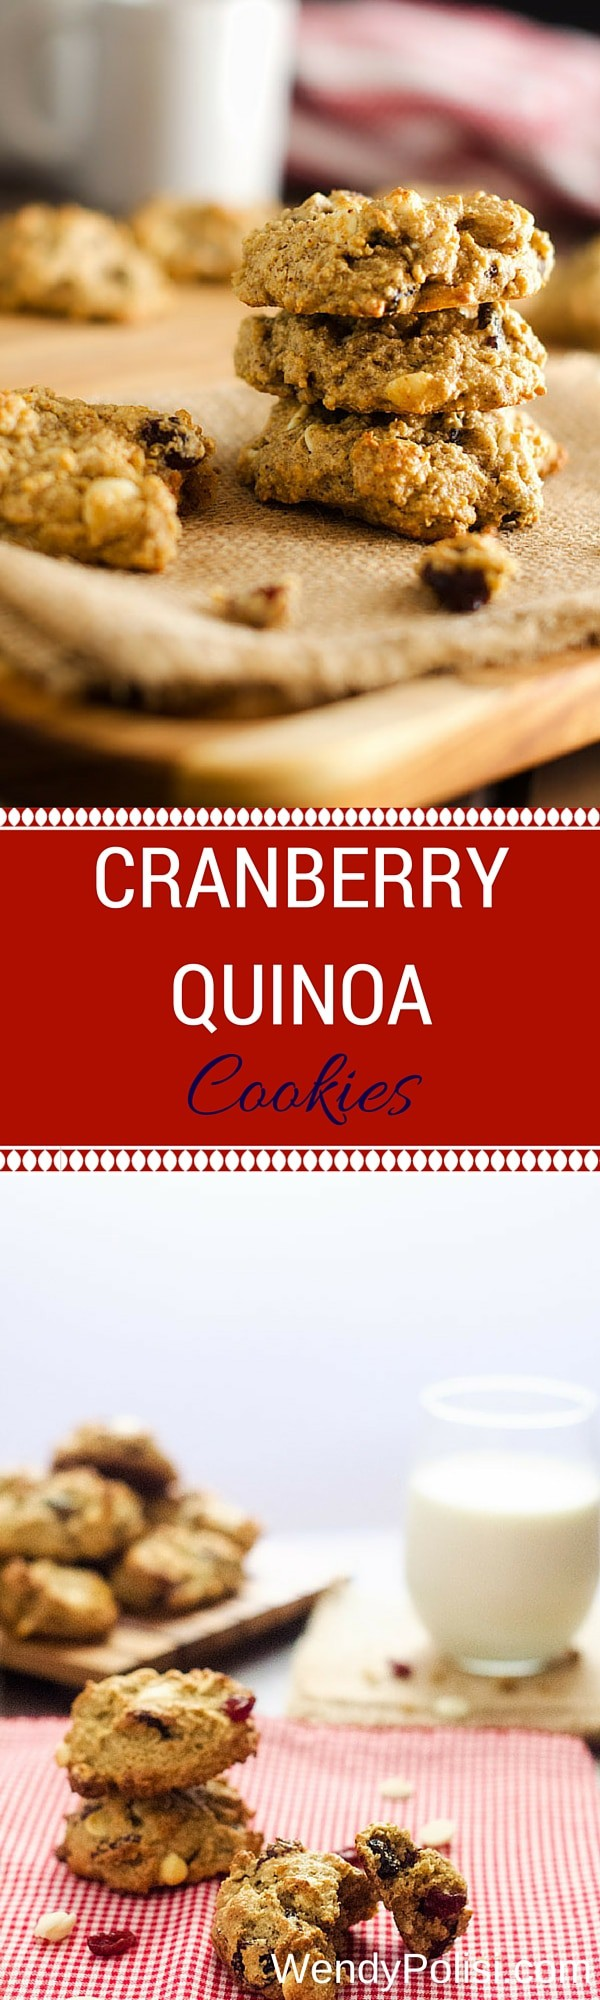 White Chocolate Cranberry Quinoa Cookies - Wendy Polisi